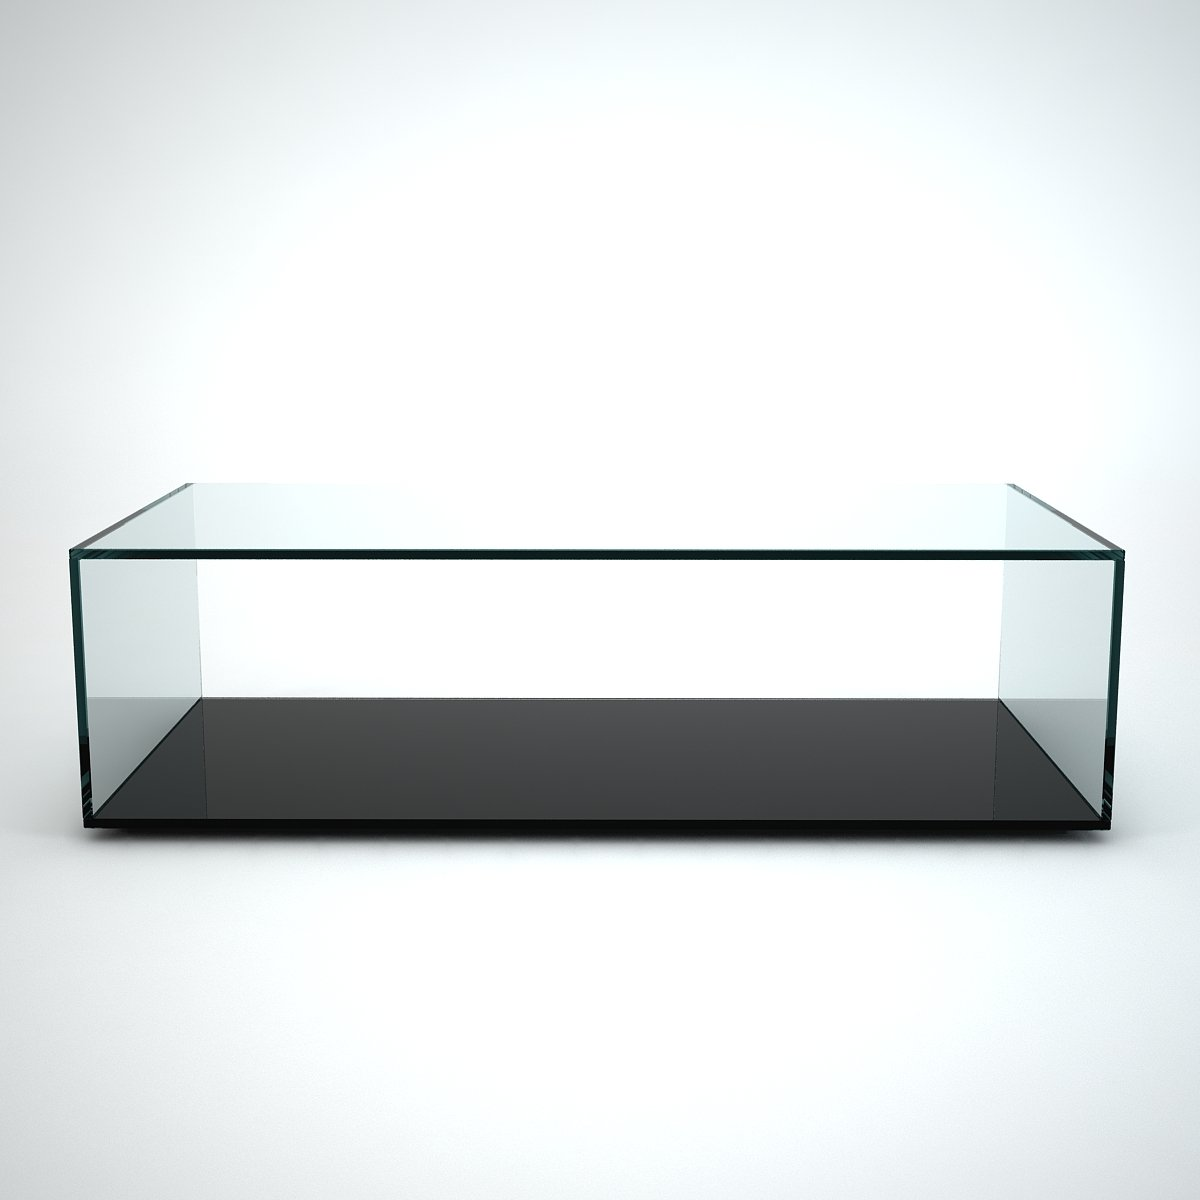 quebec rectangular glass coffee table by klarity klarity glass